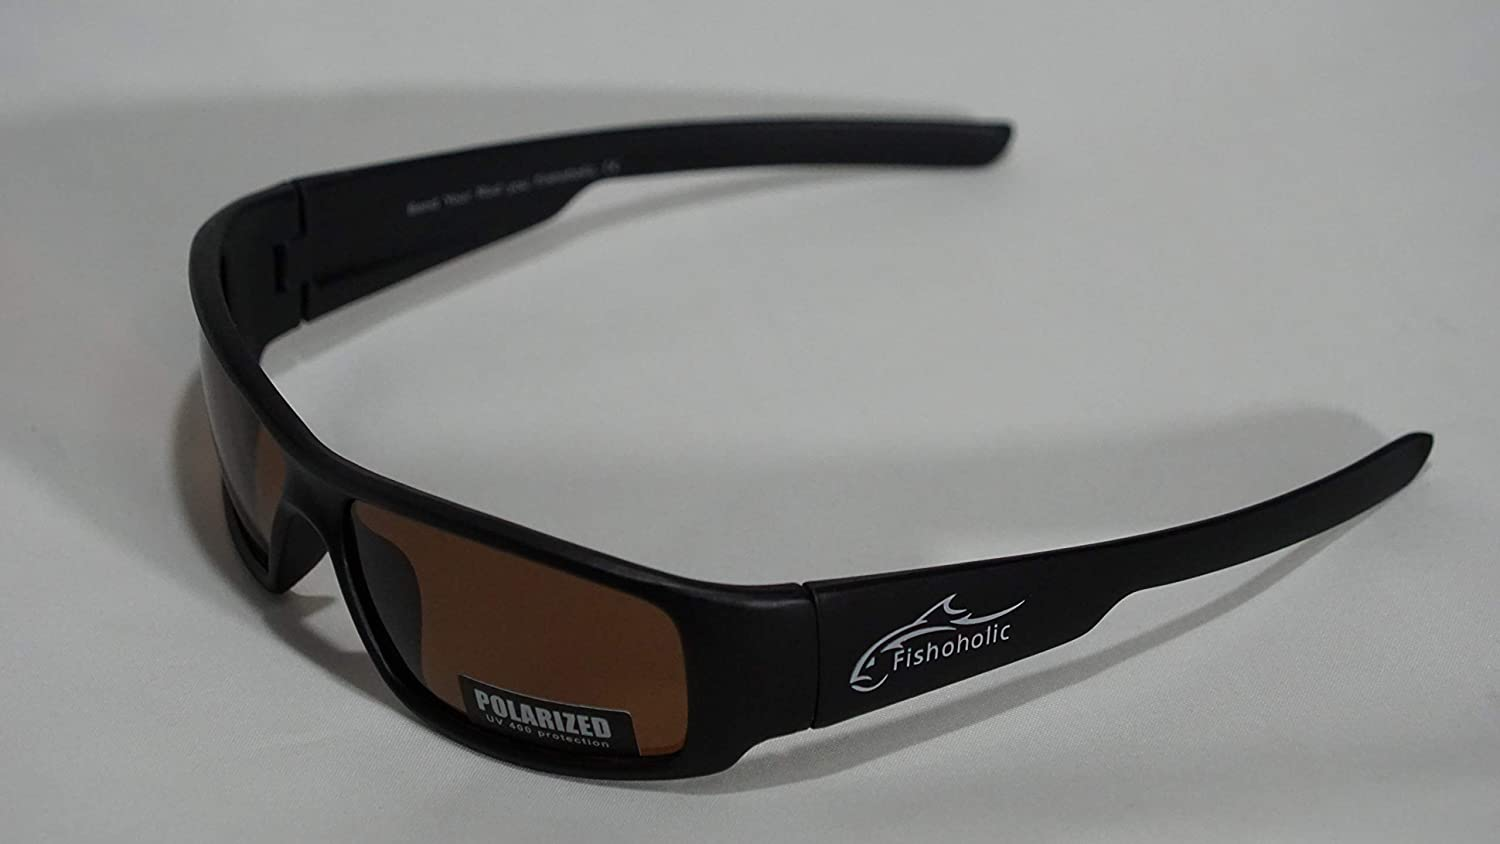 R 4 Color Options Fishoholic Polarized Fishing Sunglasses Great Gift to Fish River Lake Bass Saltwater /& Flyfishing TM w Lens Cleaning Pouch UV400 100/% UV Protection